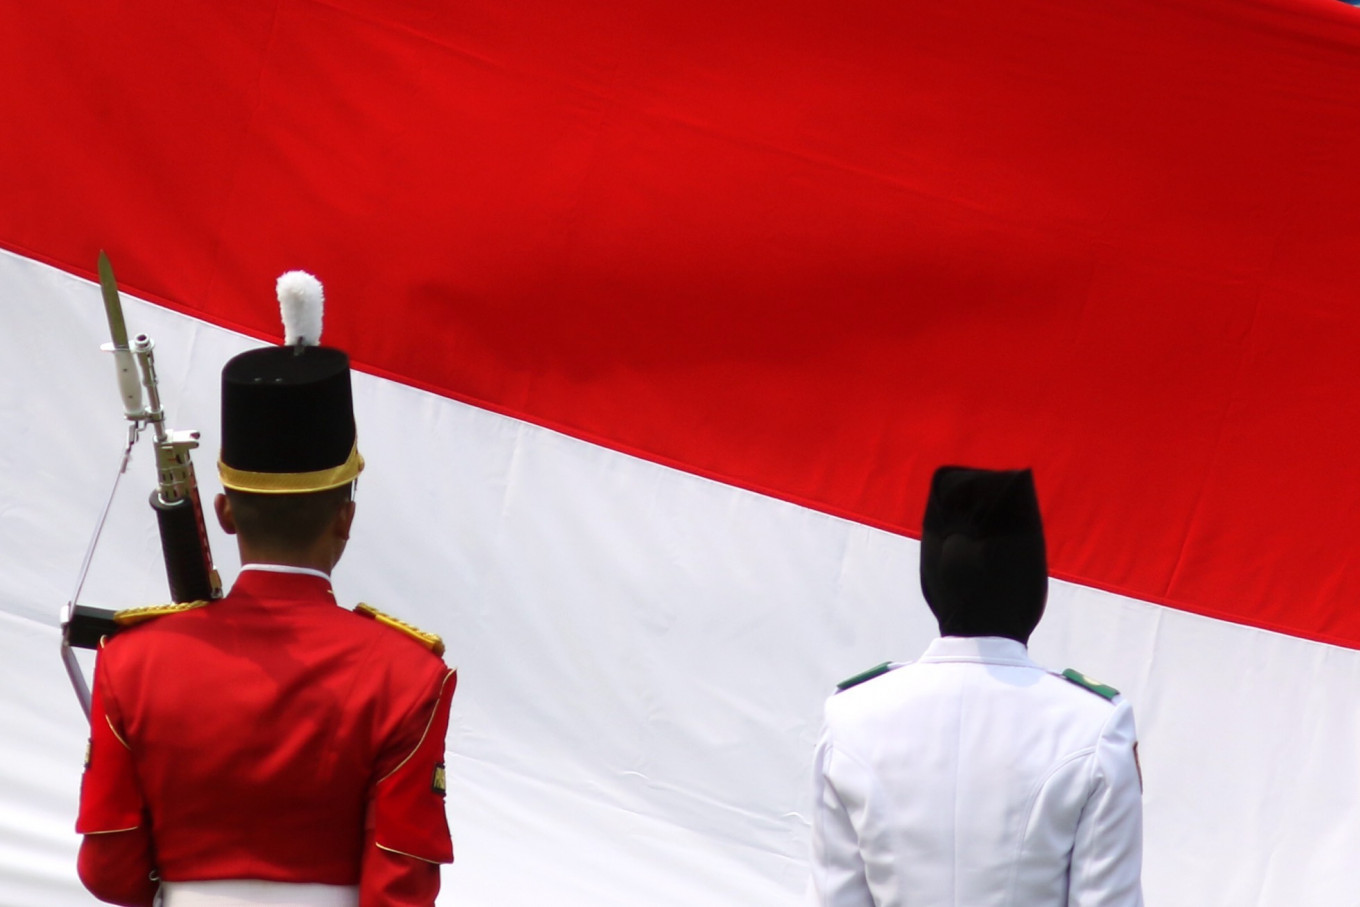 The national flag-hoisting team at the Independence Day ceremony in Jakarta on Aug. 17. JP/ Seto Wardhana